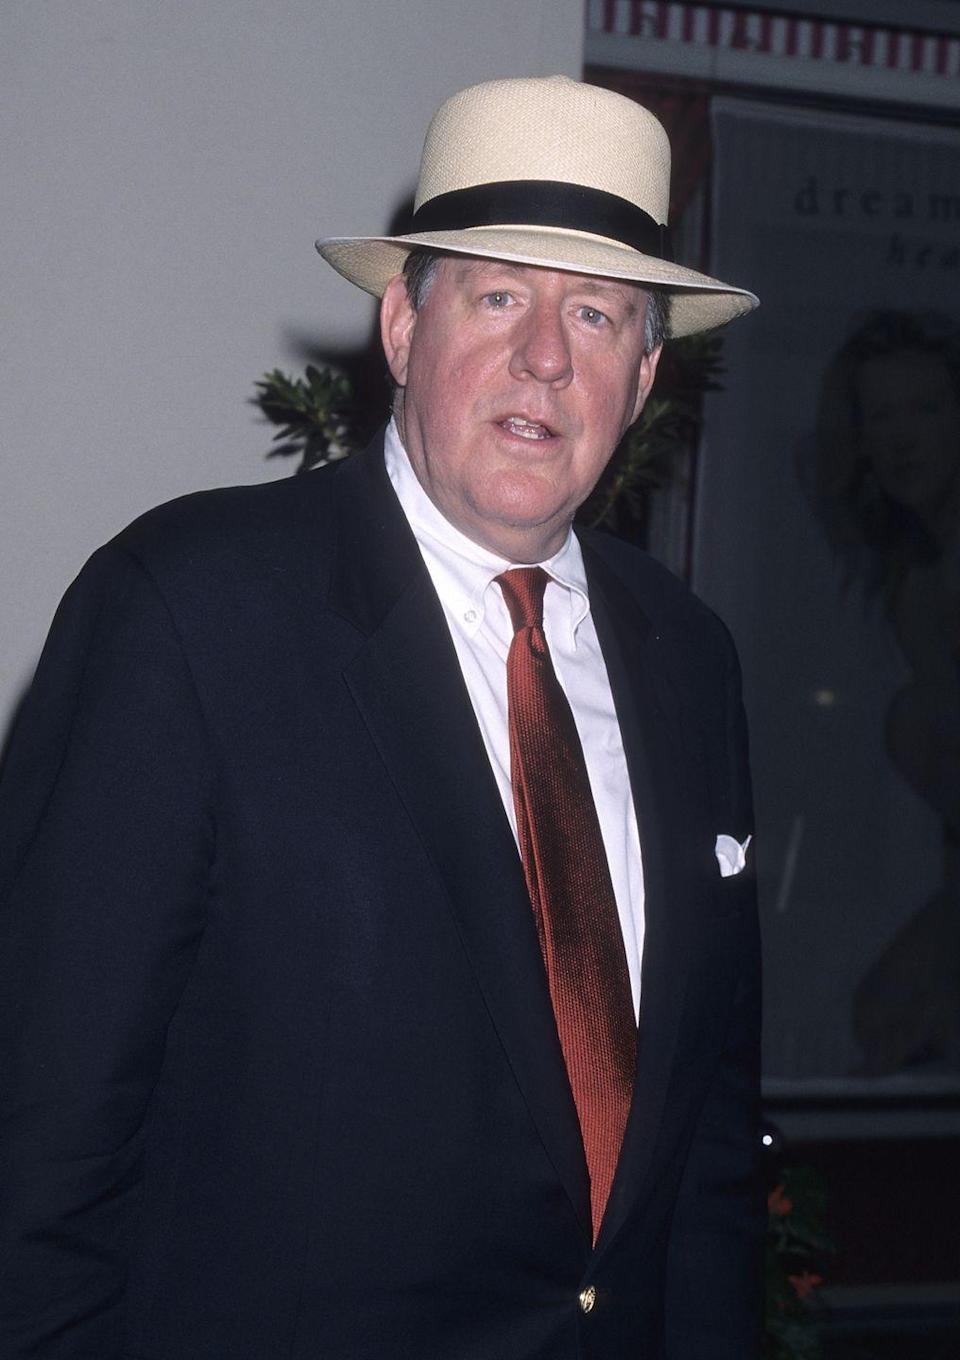 <p>Edward Herrmann was by far one of the most recognizable names when he starred as Richard Gilmore, Rory's dashing and intellectual grandfather. From <em>Overboard </em>to <em>Annie</em>, he was an impeccably trained actor who was instantly recognizable for his tall and strong stature.</p>